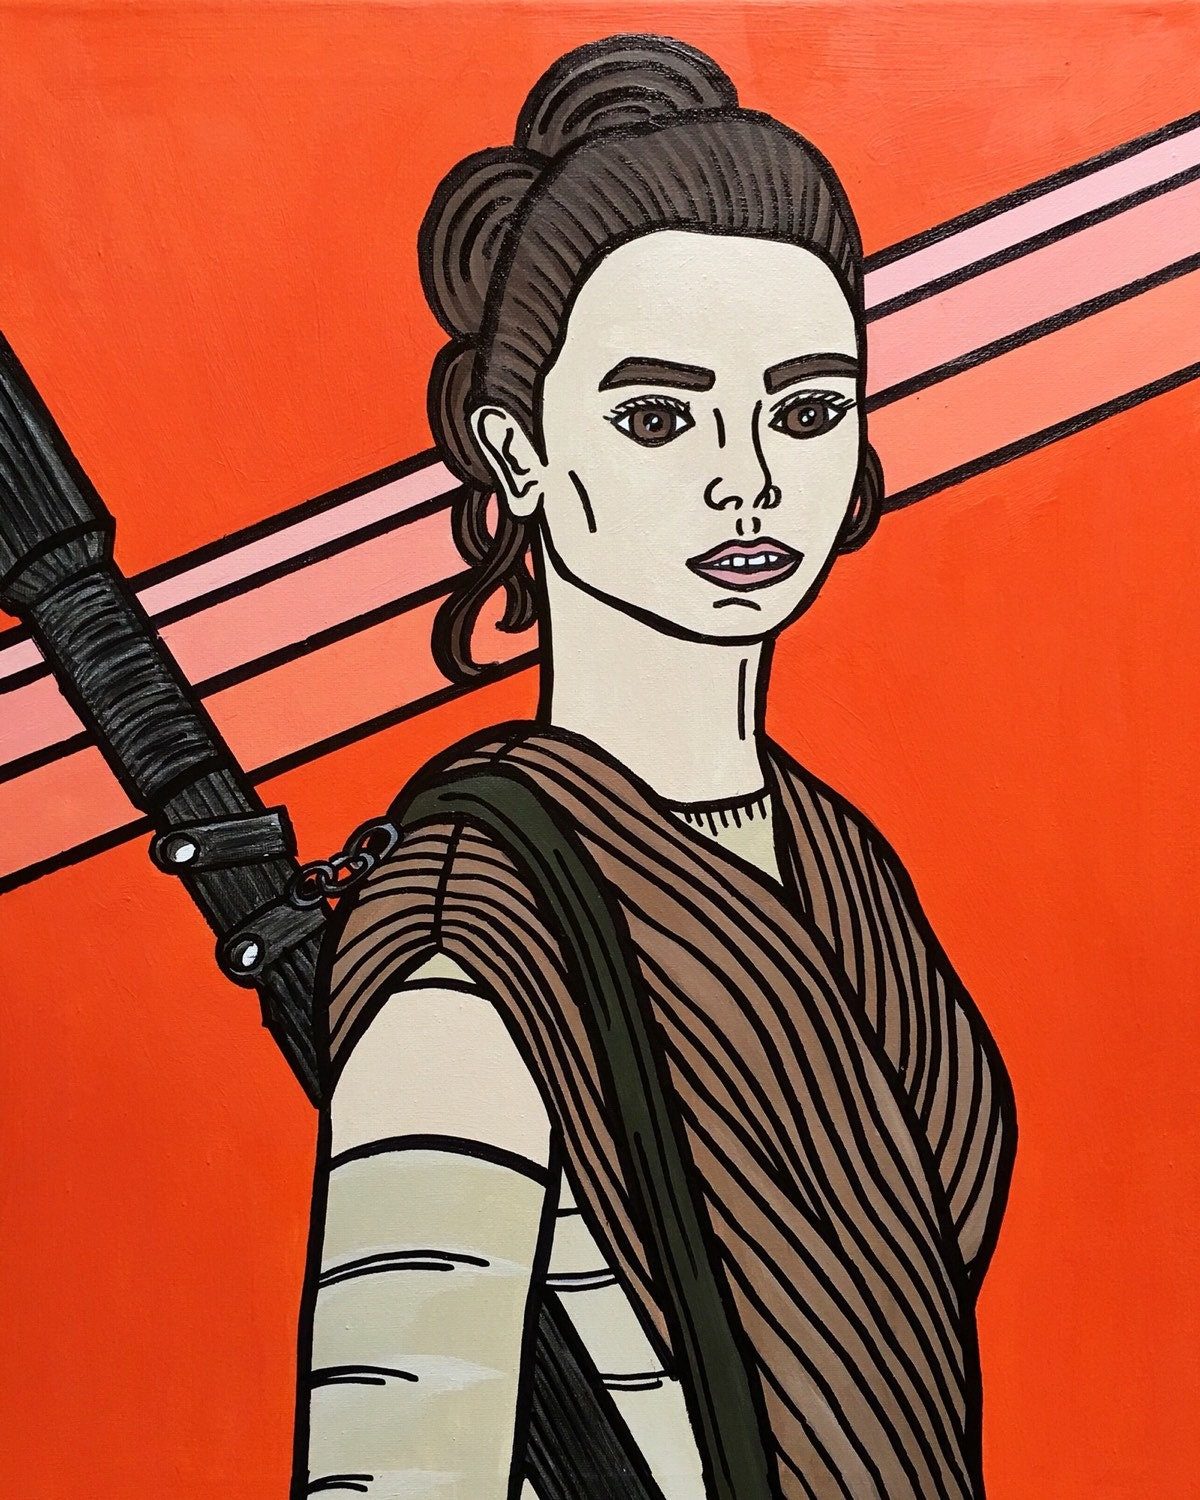 star wars the force awakens rey pop art print tv. Black Bedroom Furniture Sets. Home Design Ideas